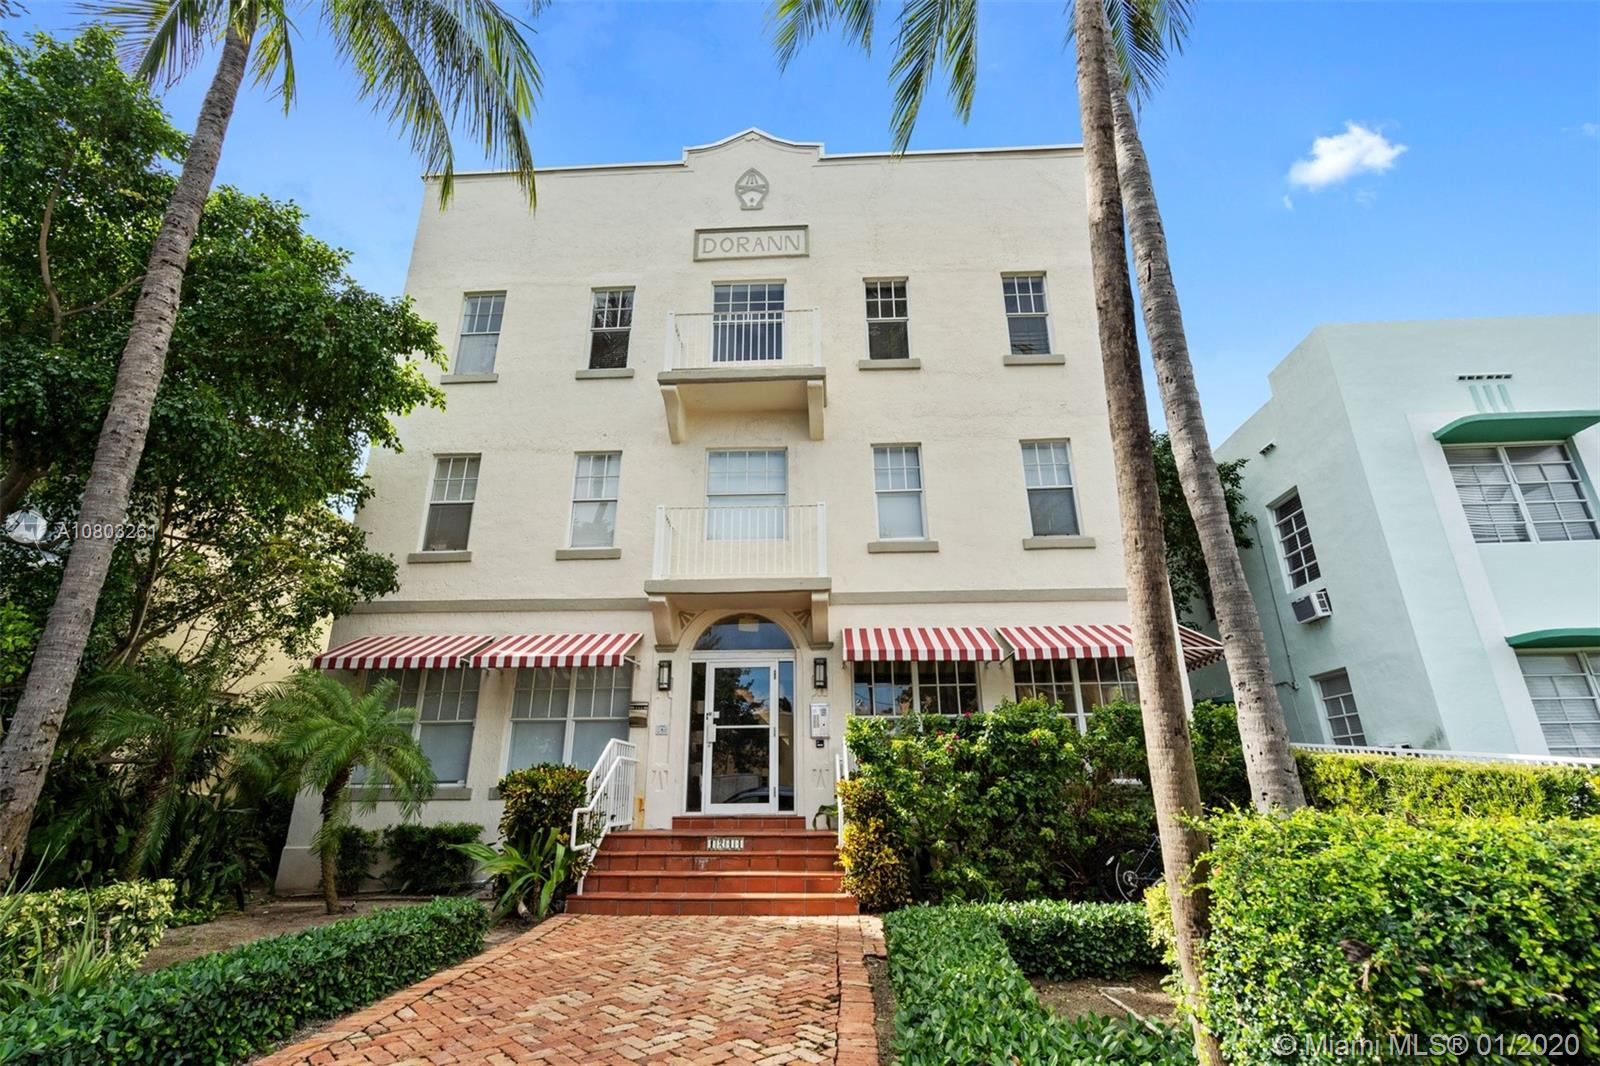 1244 Pennsylvania Ave # 302, Miami Beach, Florida 33139, 1 Bedroom Bedrooms, ,1 BathroomBathrooms,Residential,For Sale,1244 Pennsylvania Ave # 302,A10803261